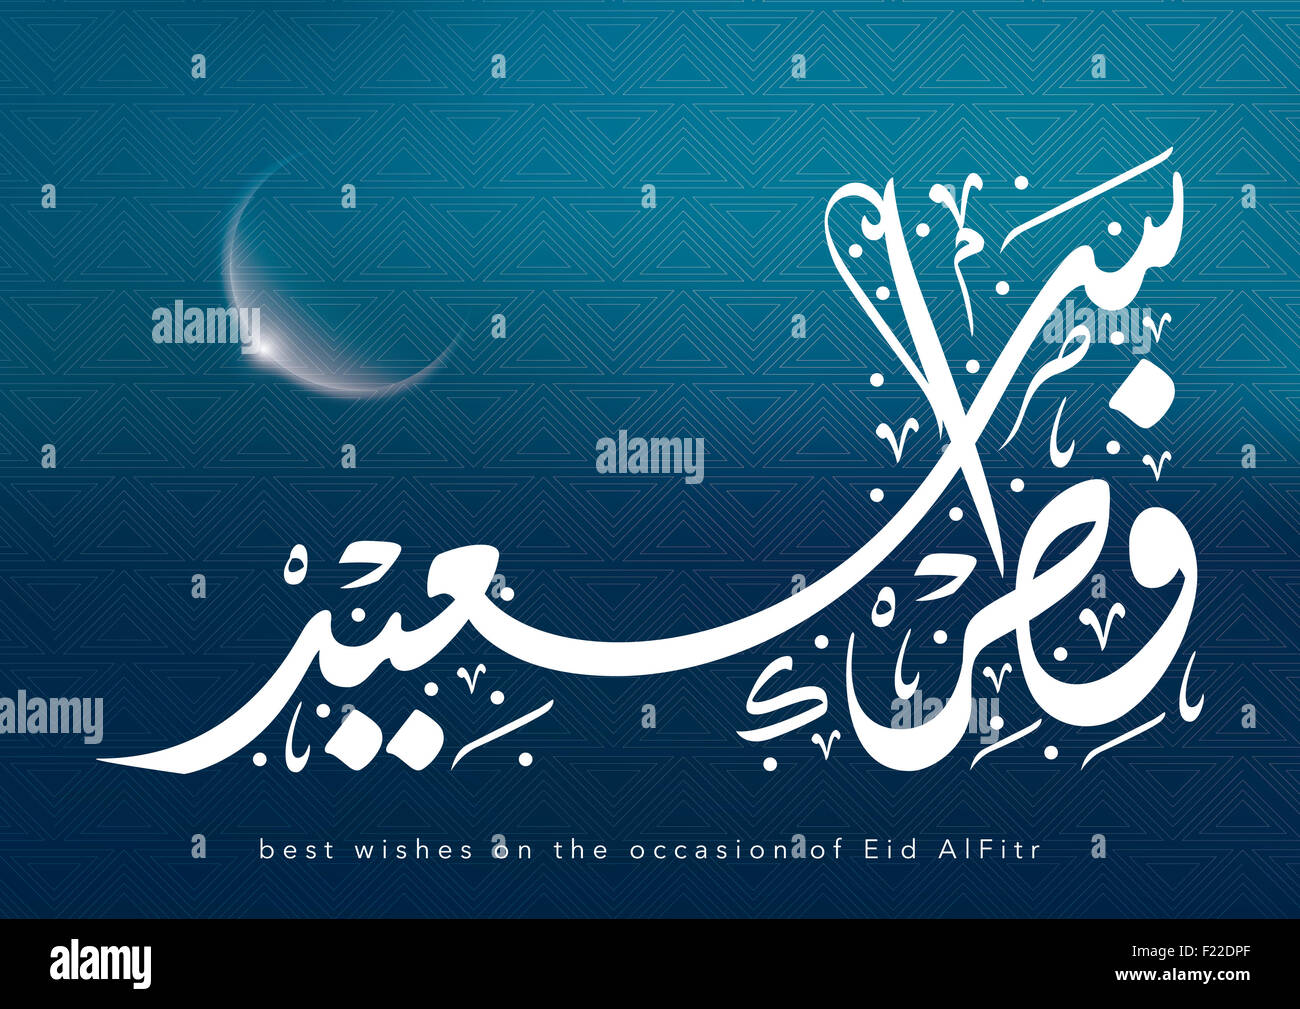 Arabic calligraphy best wishes on the occasion of eid al fitr arabic calligraphy best wishes on the occasion of eid al fitr kristyandbryce Choice Image